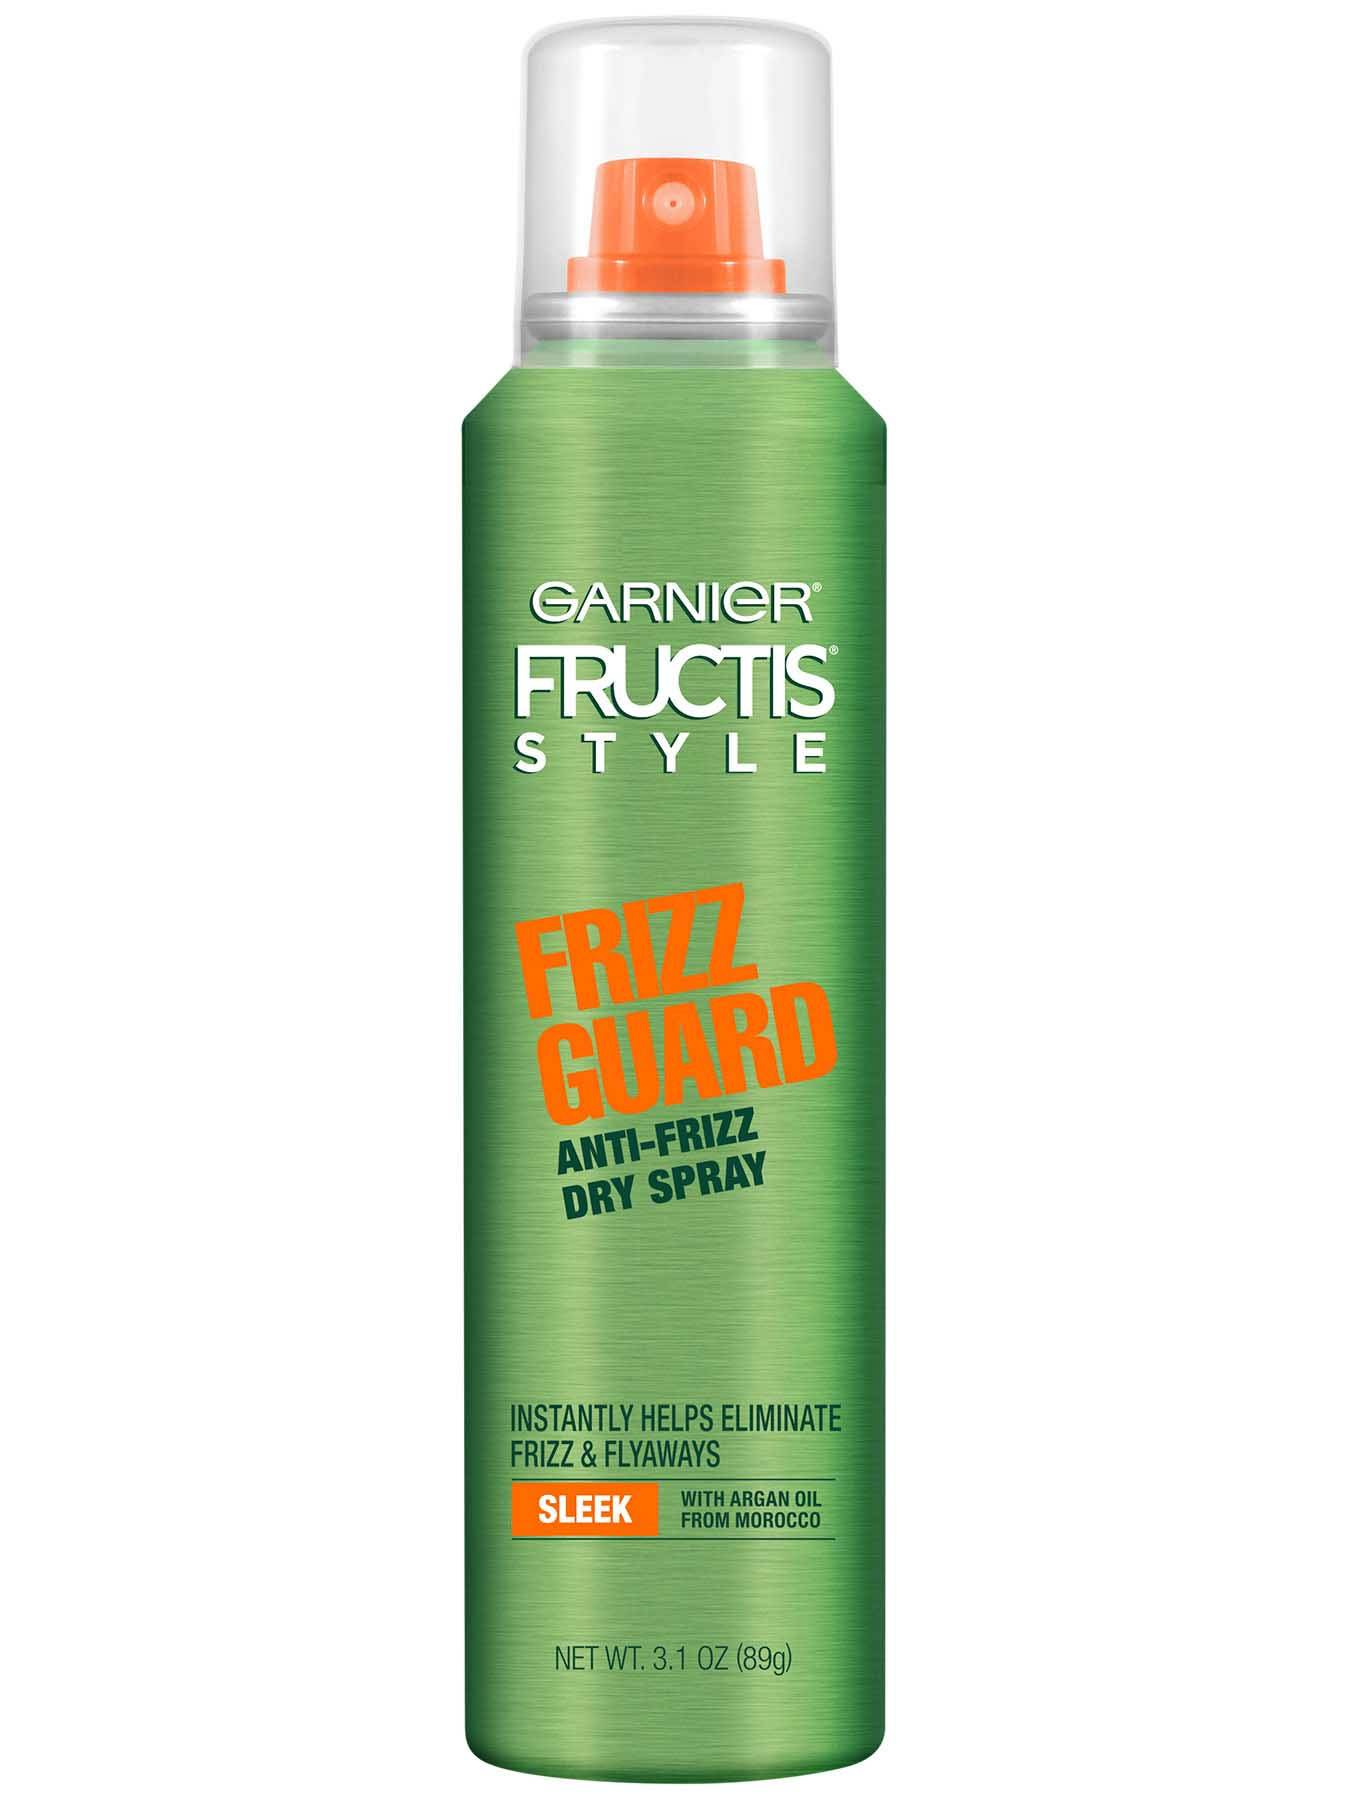 Front view of Frizz Guard Anti-Frizz Dry Spray.